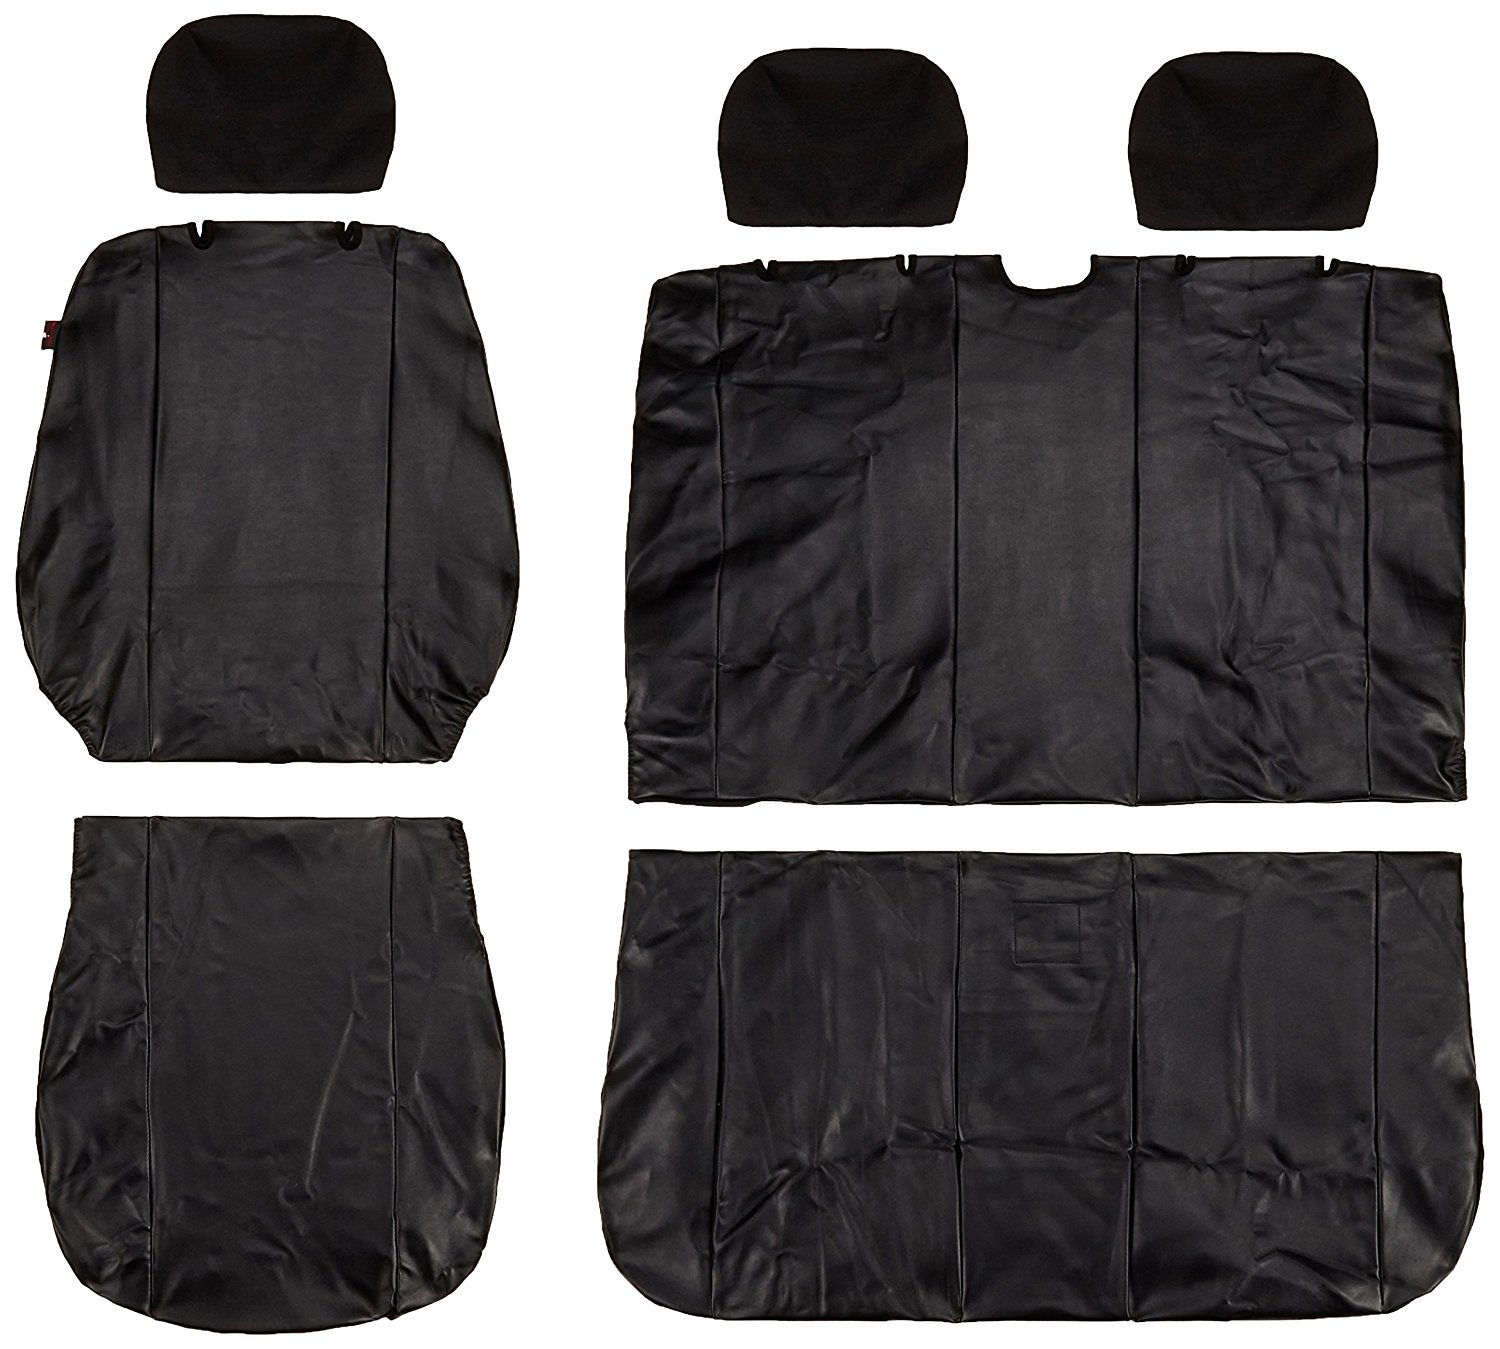 Walser 11476 Car Seat Cover for Single Front Seat and Double Bench.